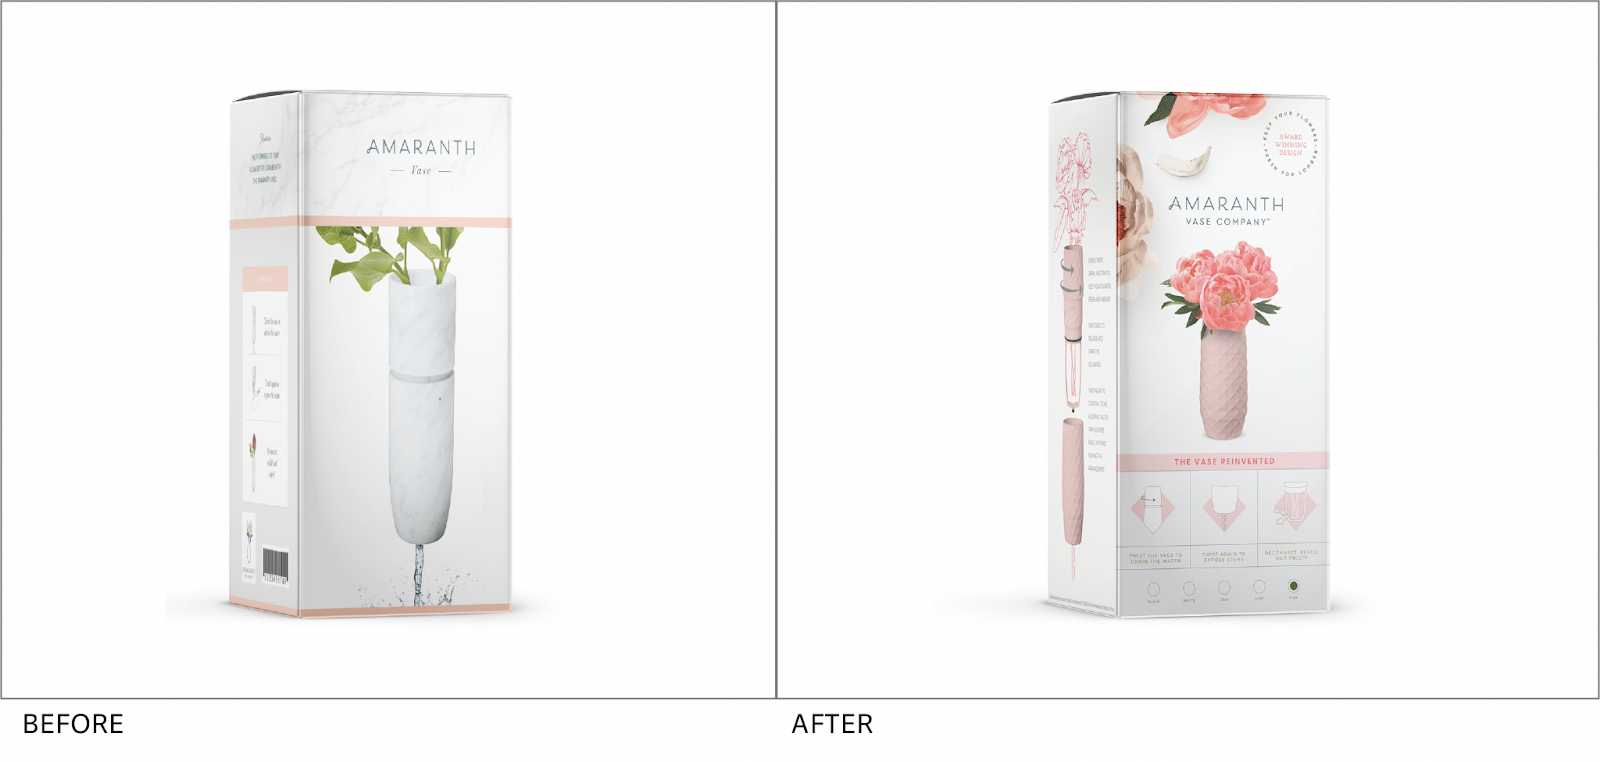 Amaranth Vase box showing the before and after image redesign.